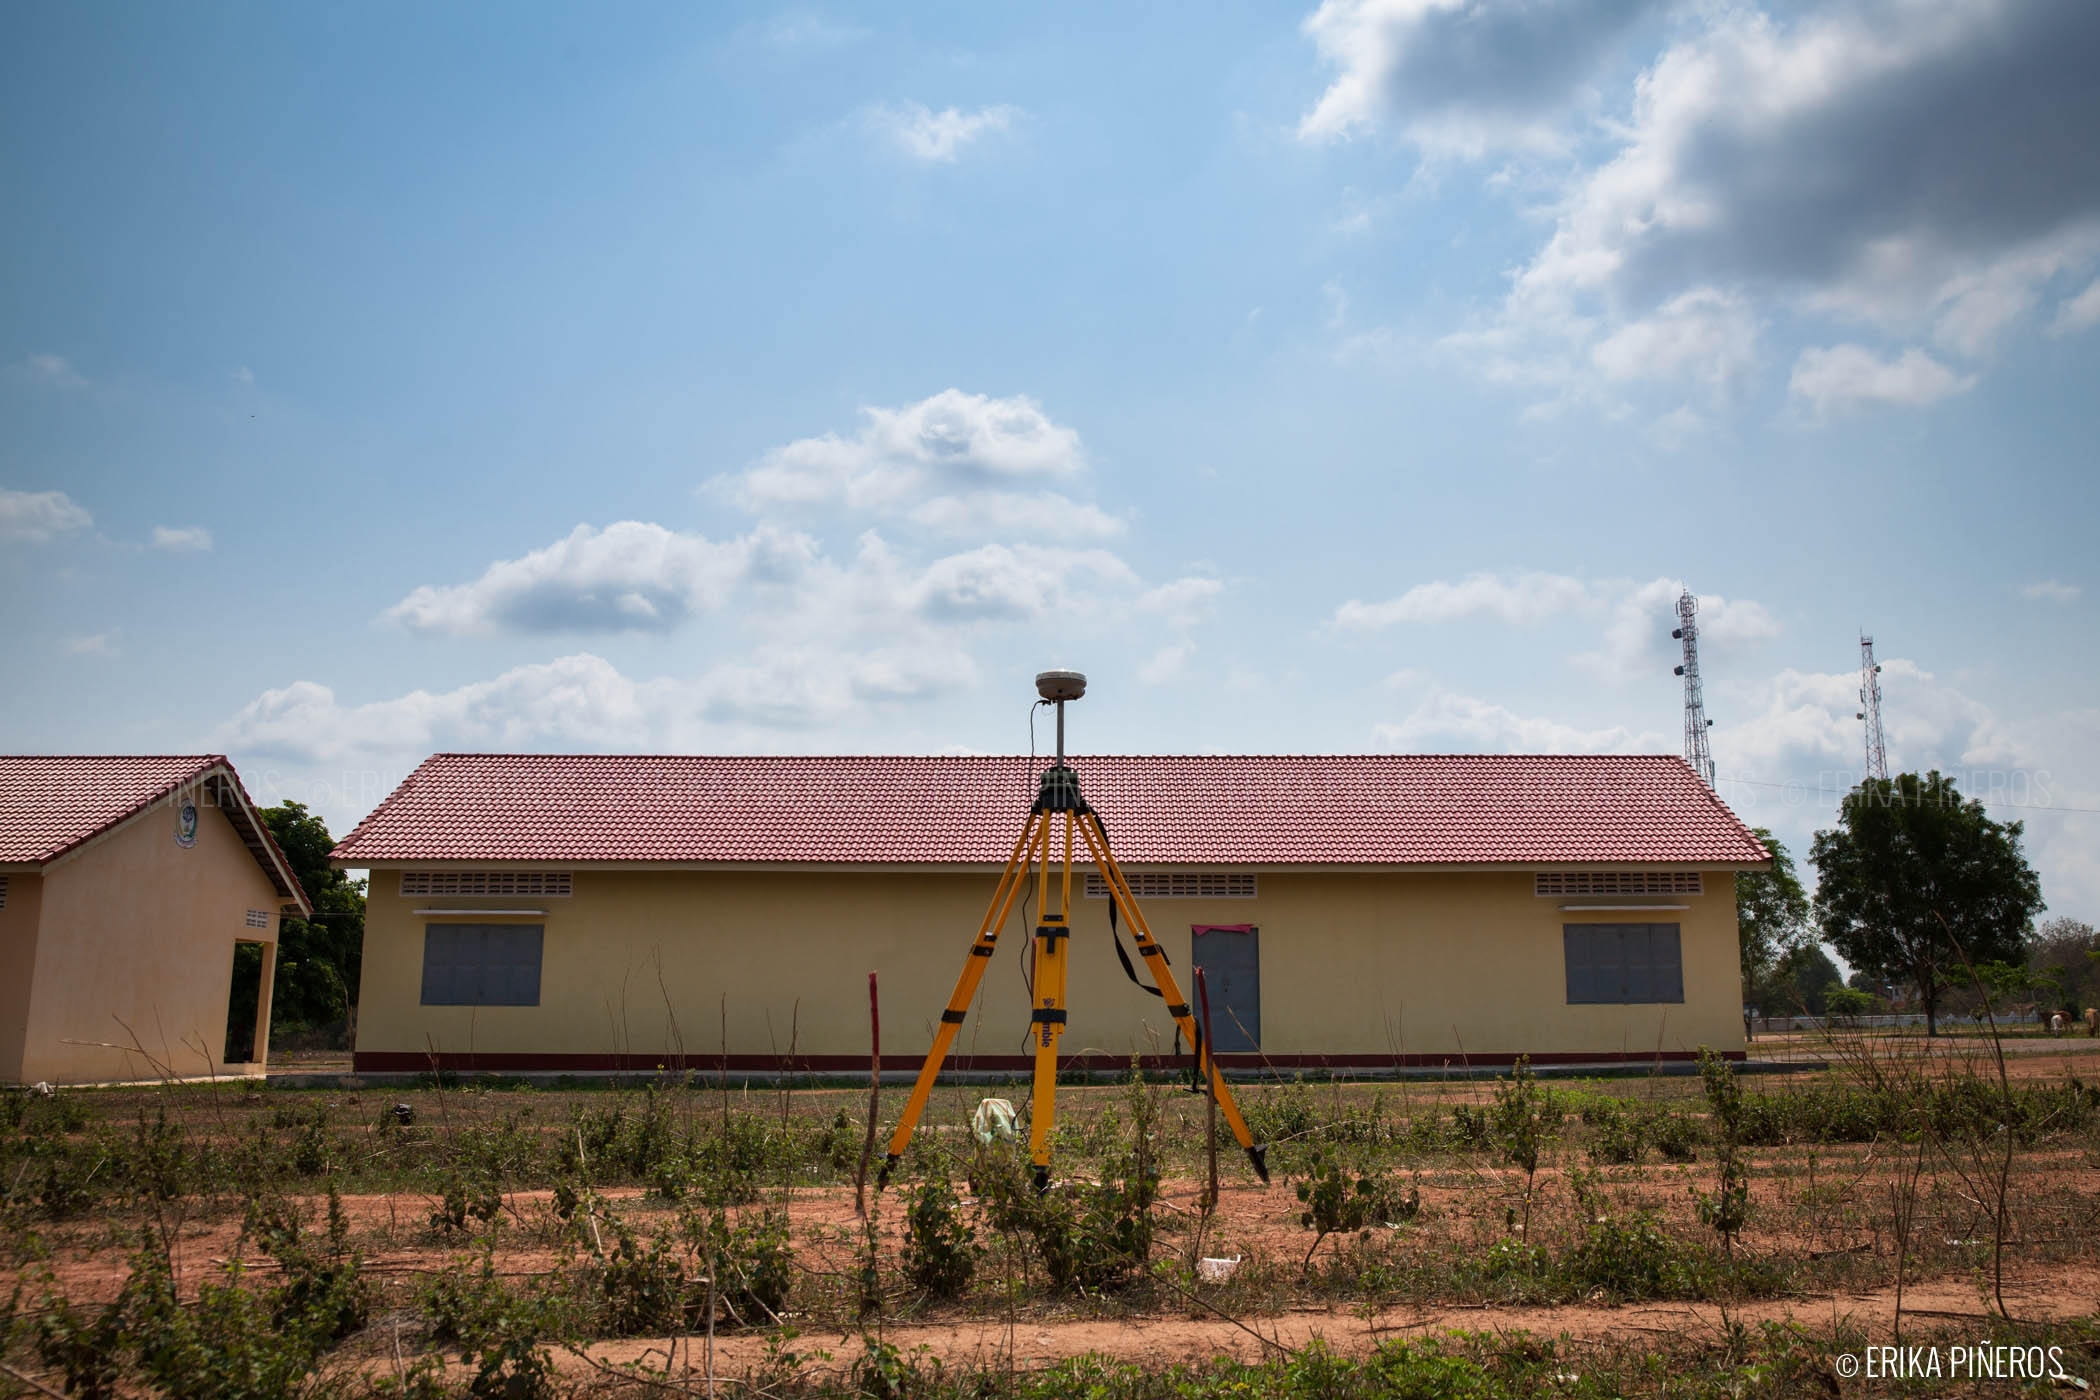 DGPS base station within the Banteay Chhmar acquisition block. Photo: Erika Pineros